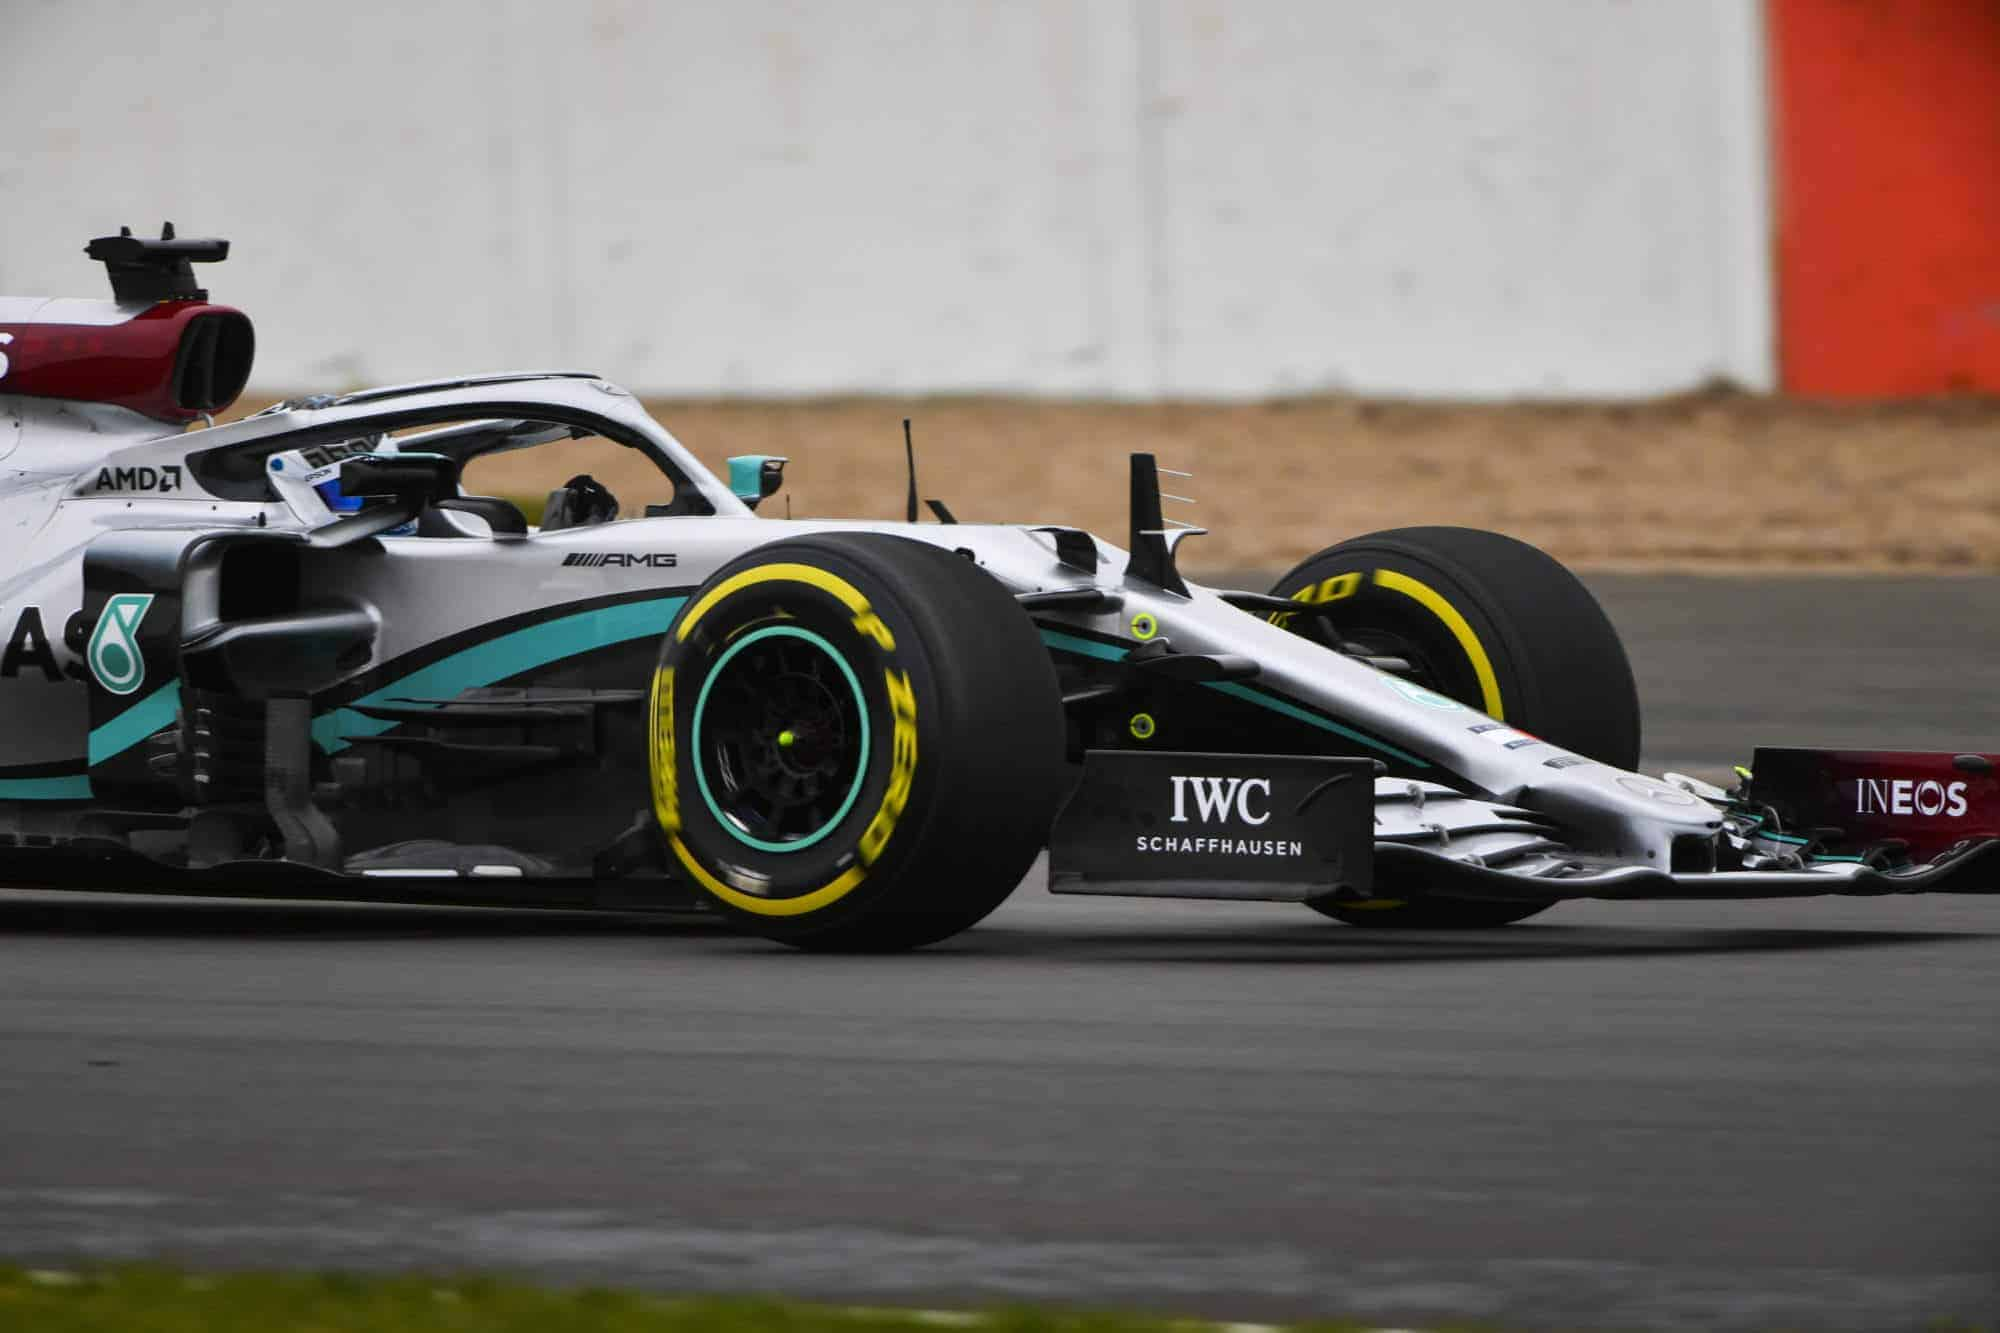 2020 F1 Mercedes F1 W11 first shakedown Bottas 2 2000px Silverstone Photo Daimler